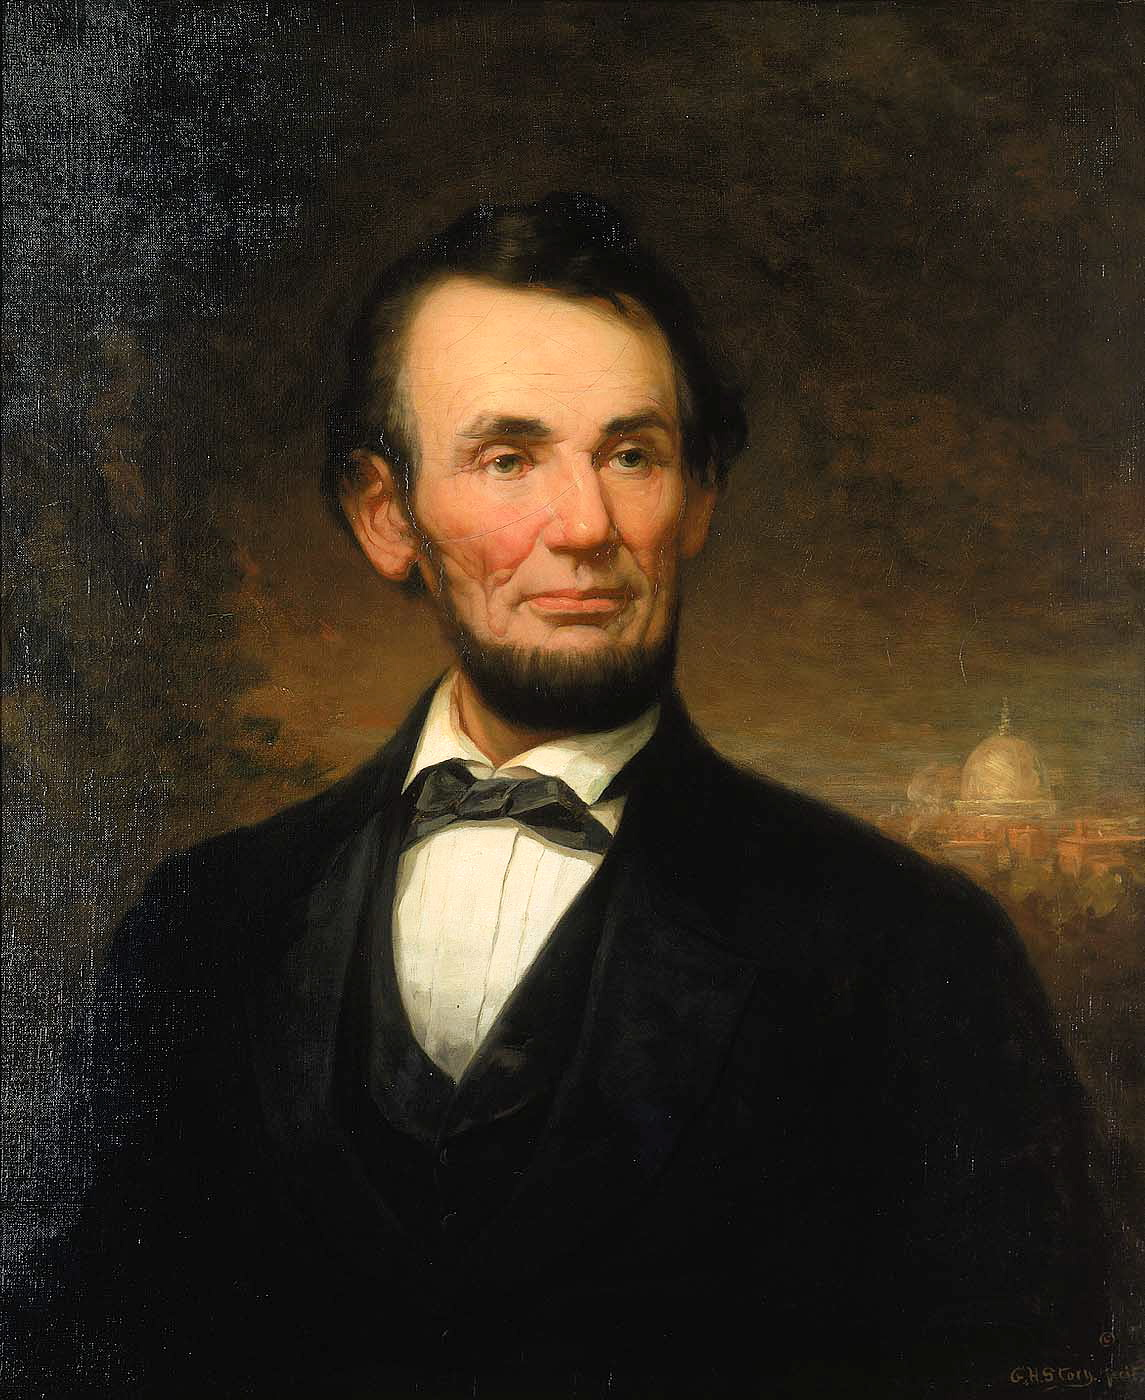 Abraham Lincoln in fiction